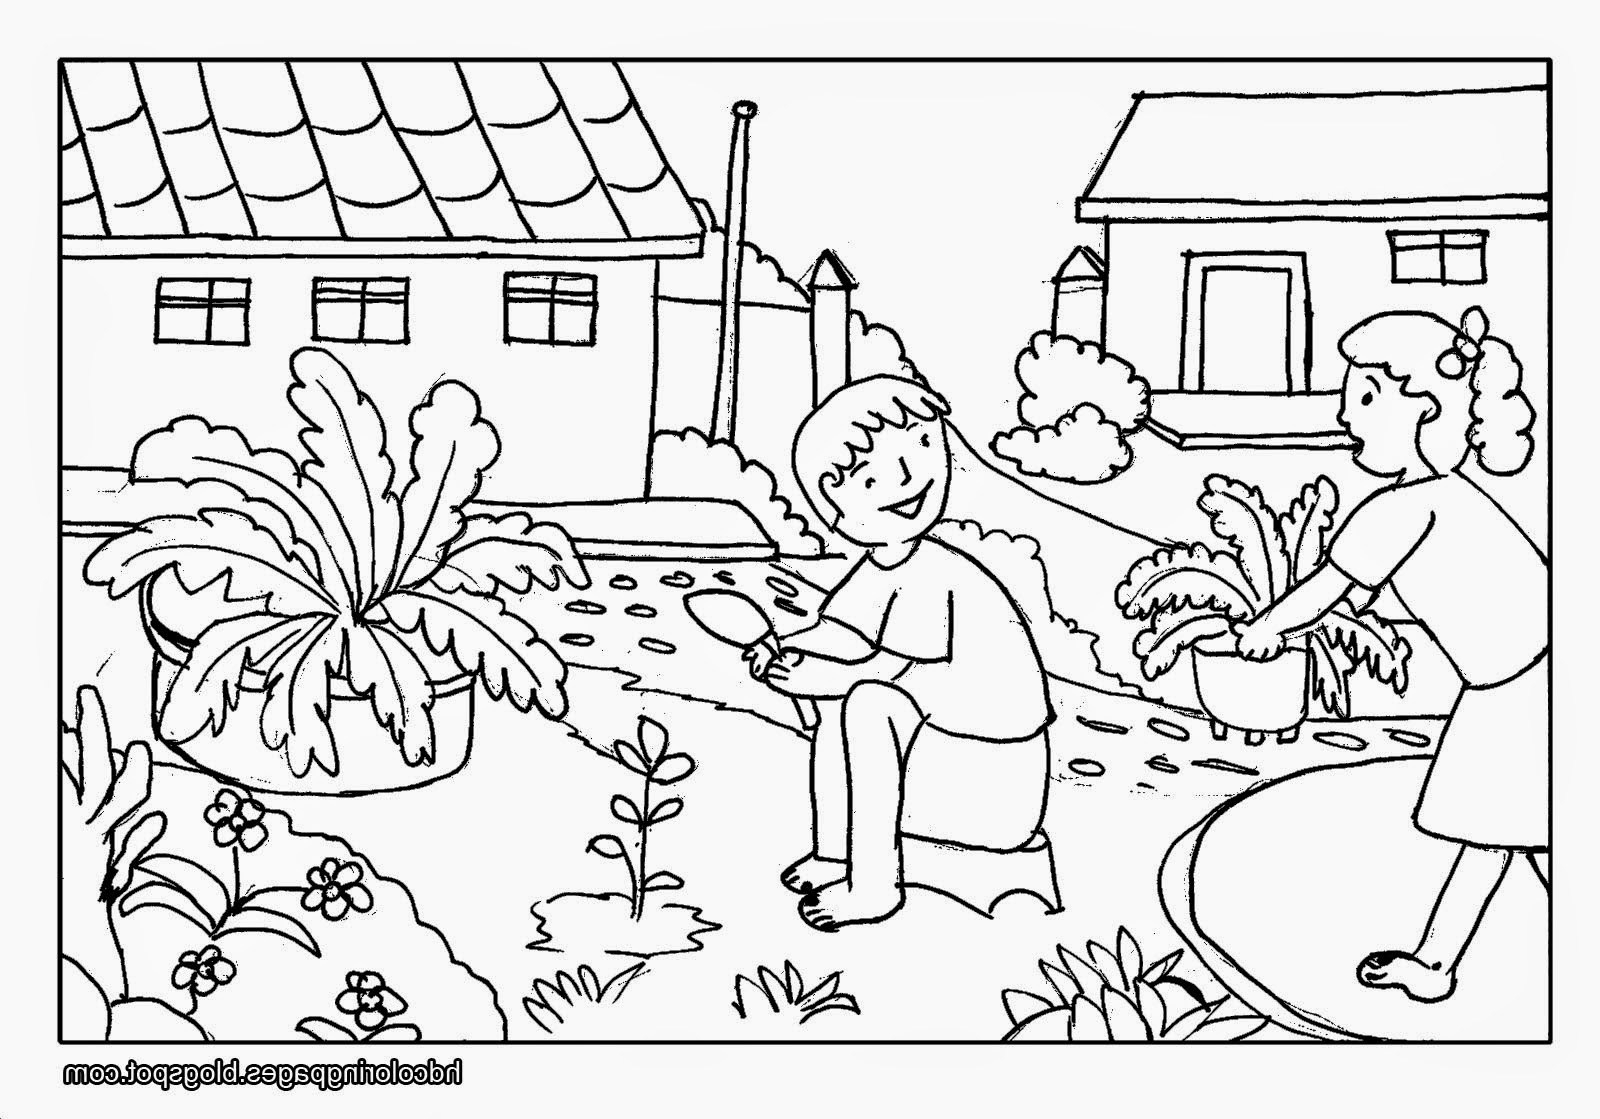 coloring scenes for kids scenery drawing step by step at getdrawings free download for kids coloring scenes